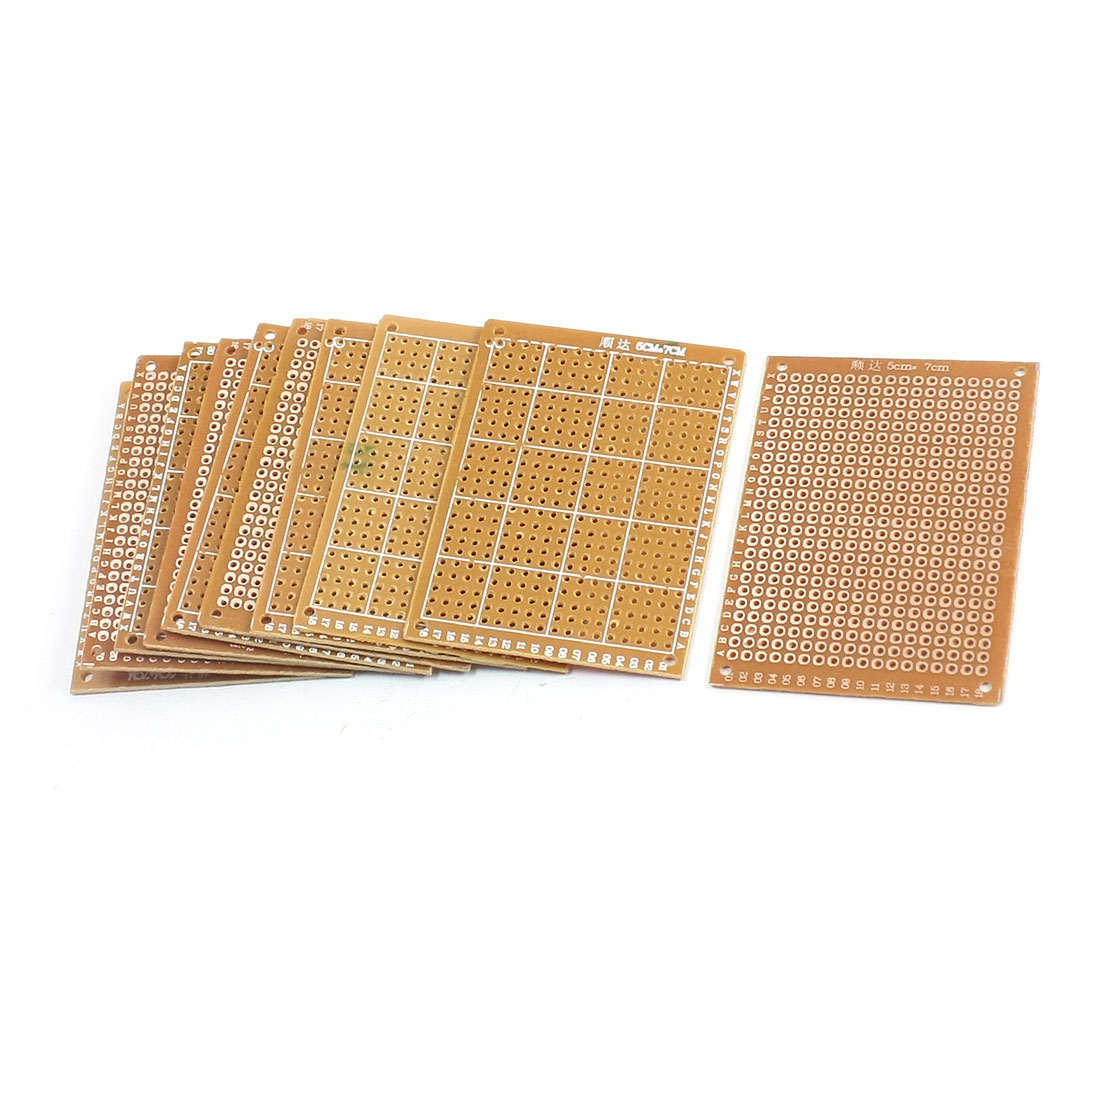 10pcs Prototyping Experiment Tester Matrix PCB Circuit Board 5x7 5 x 7cm